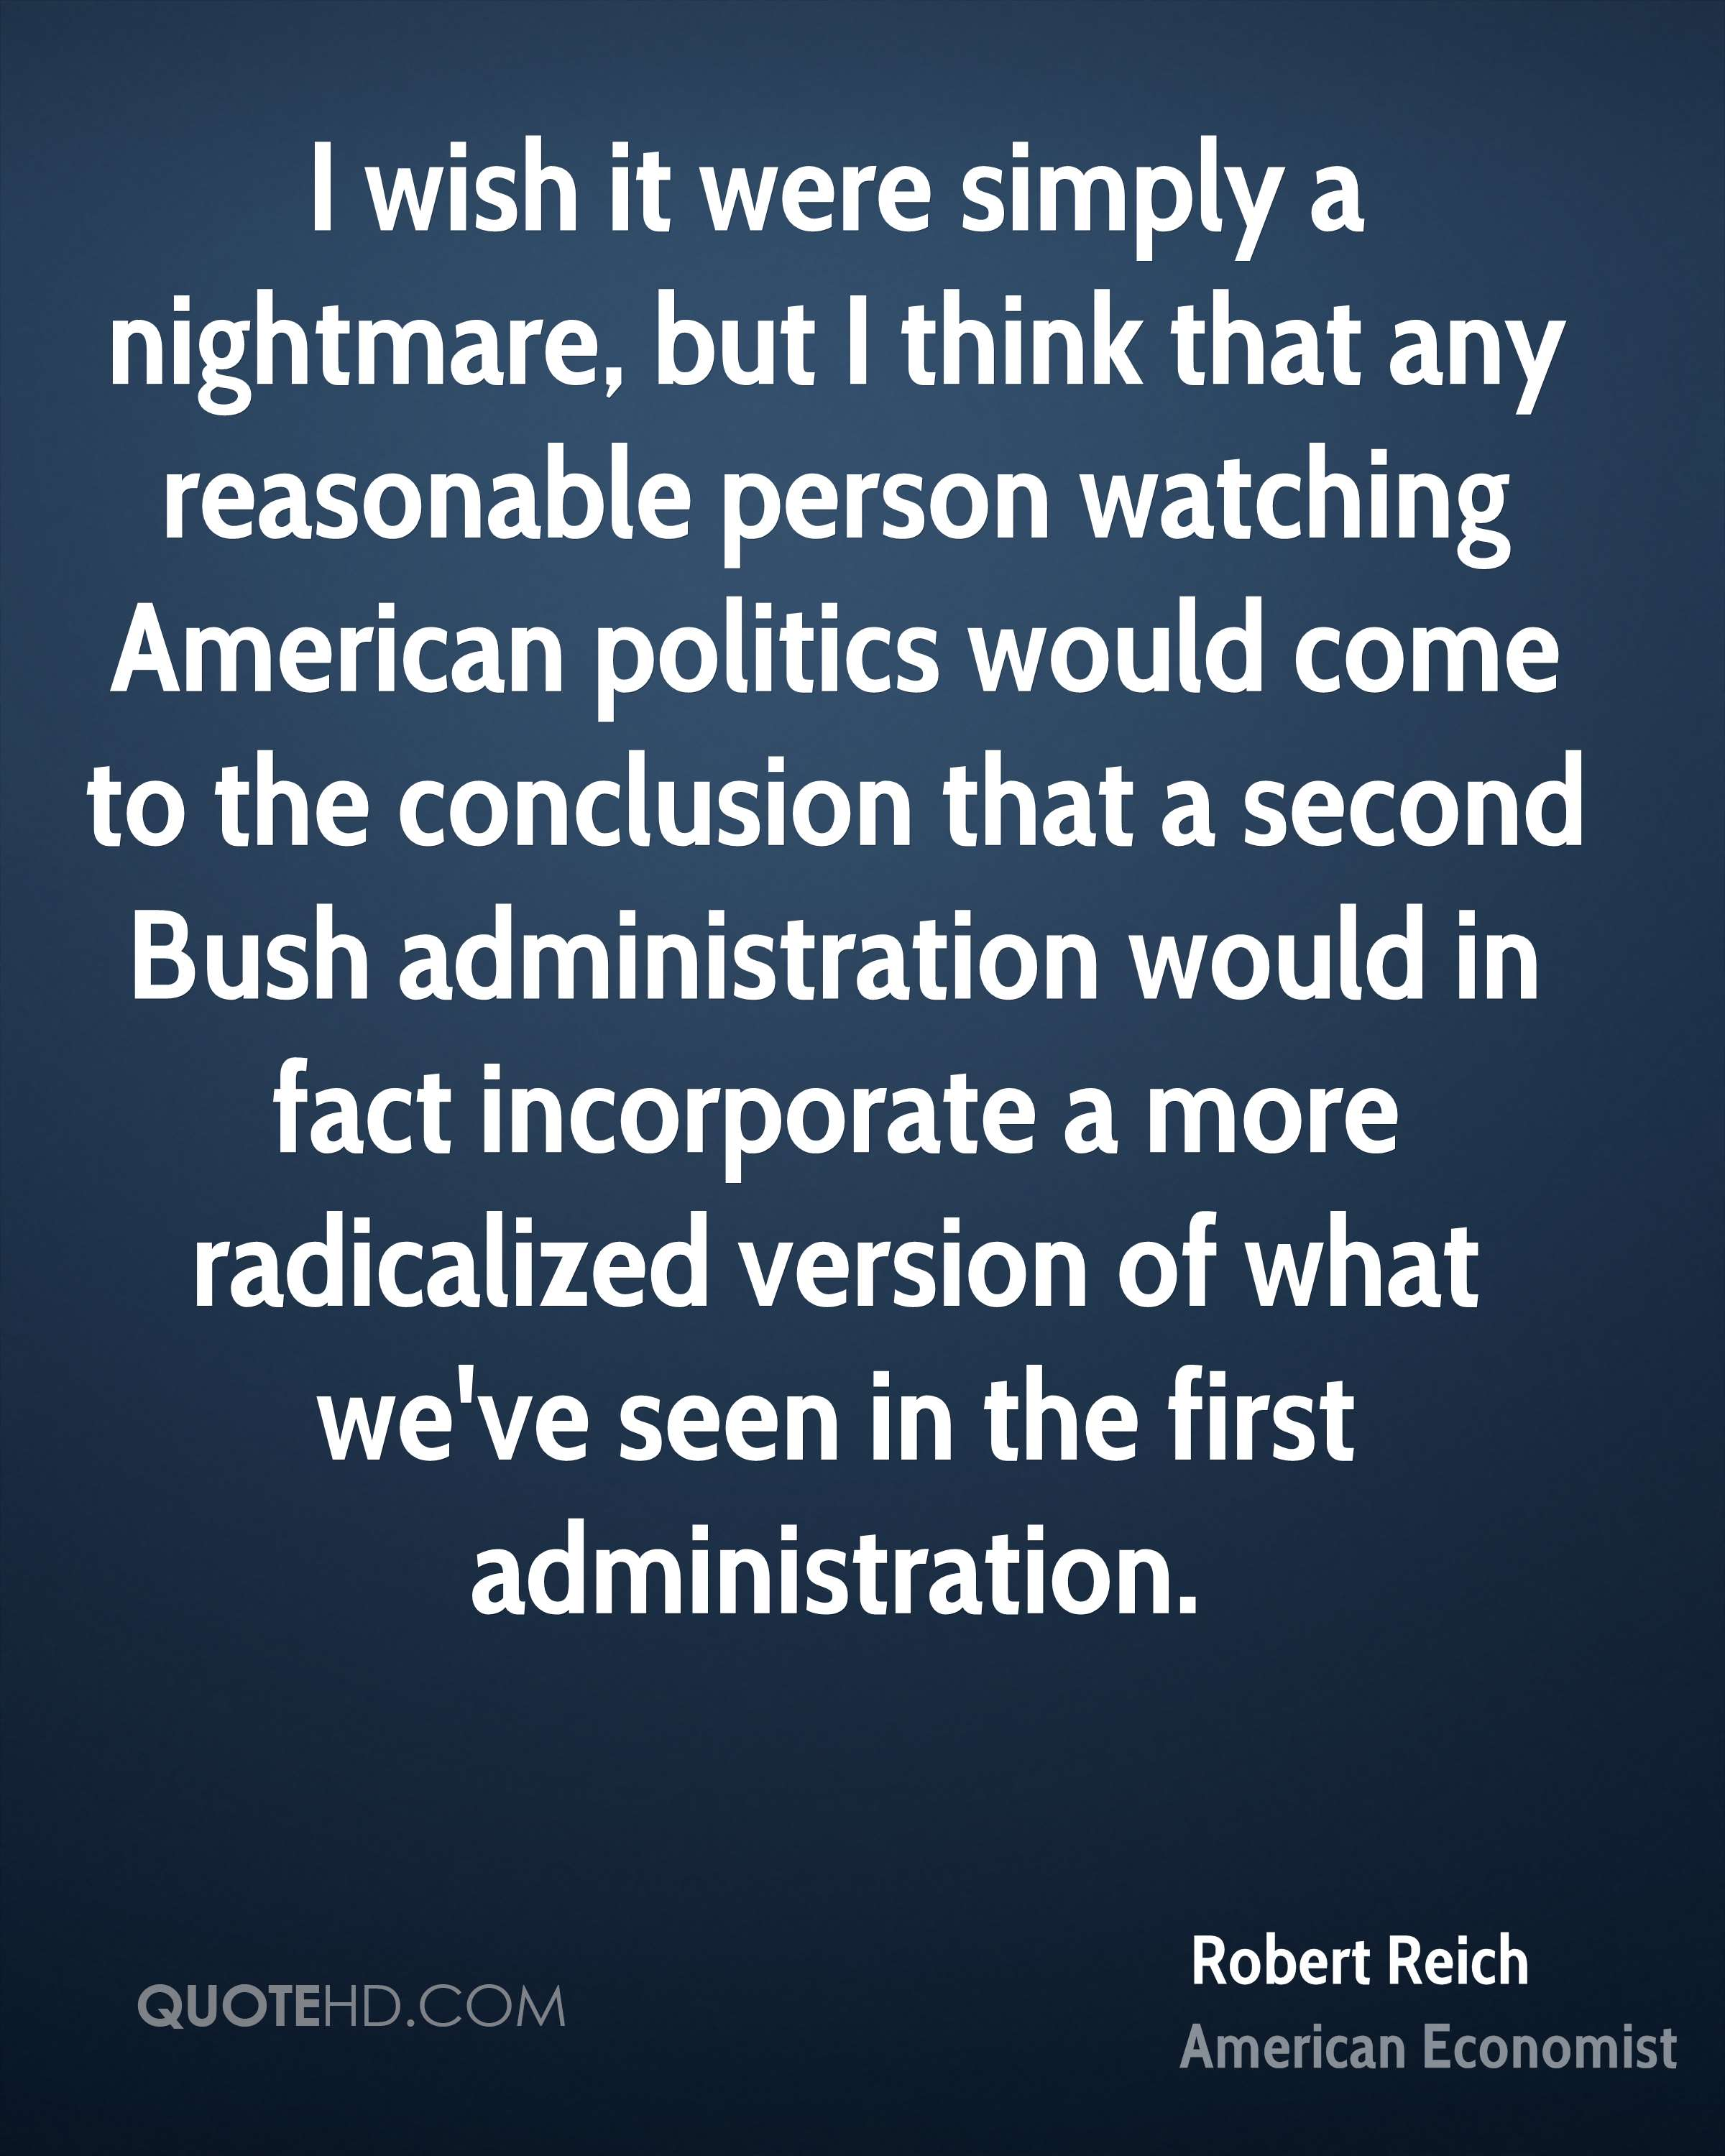 I wish it were simply a nightmare, but I think that any reasonable person watching American politics would come to the conclusion that a second Bush administration would in fact incorporate a more radicalized version of what we've seen in the first administration.